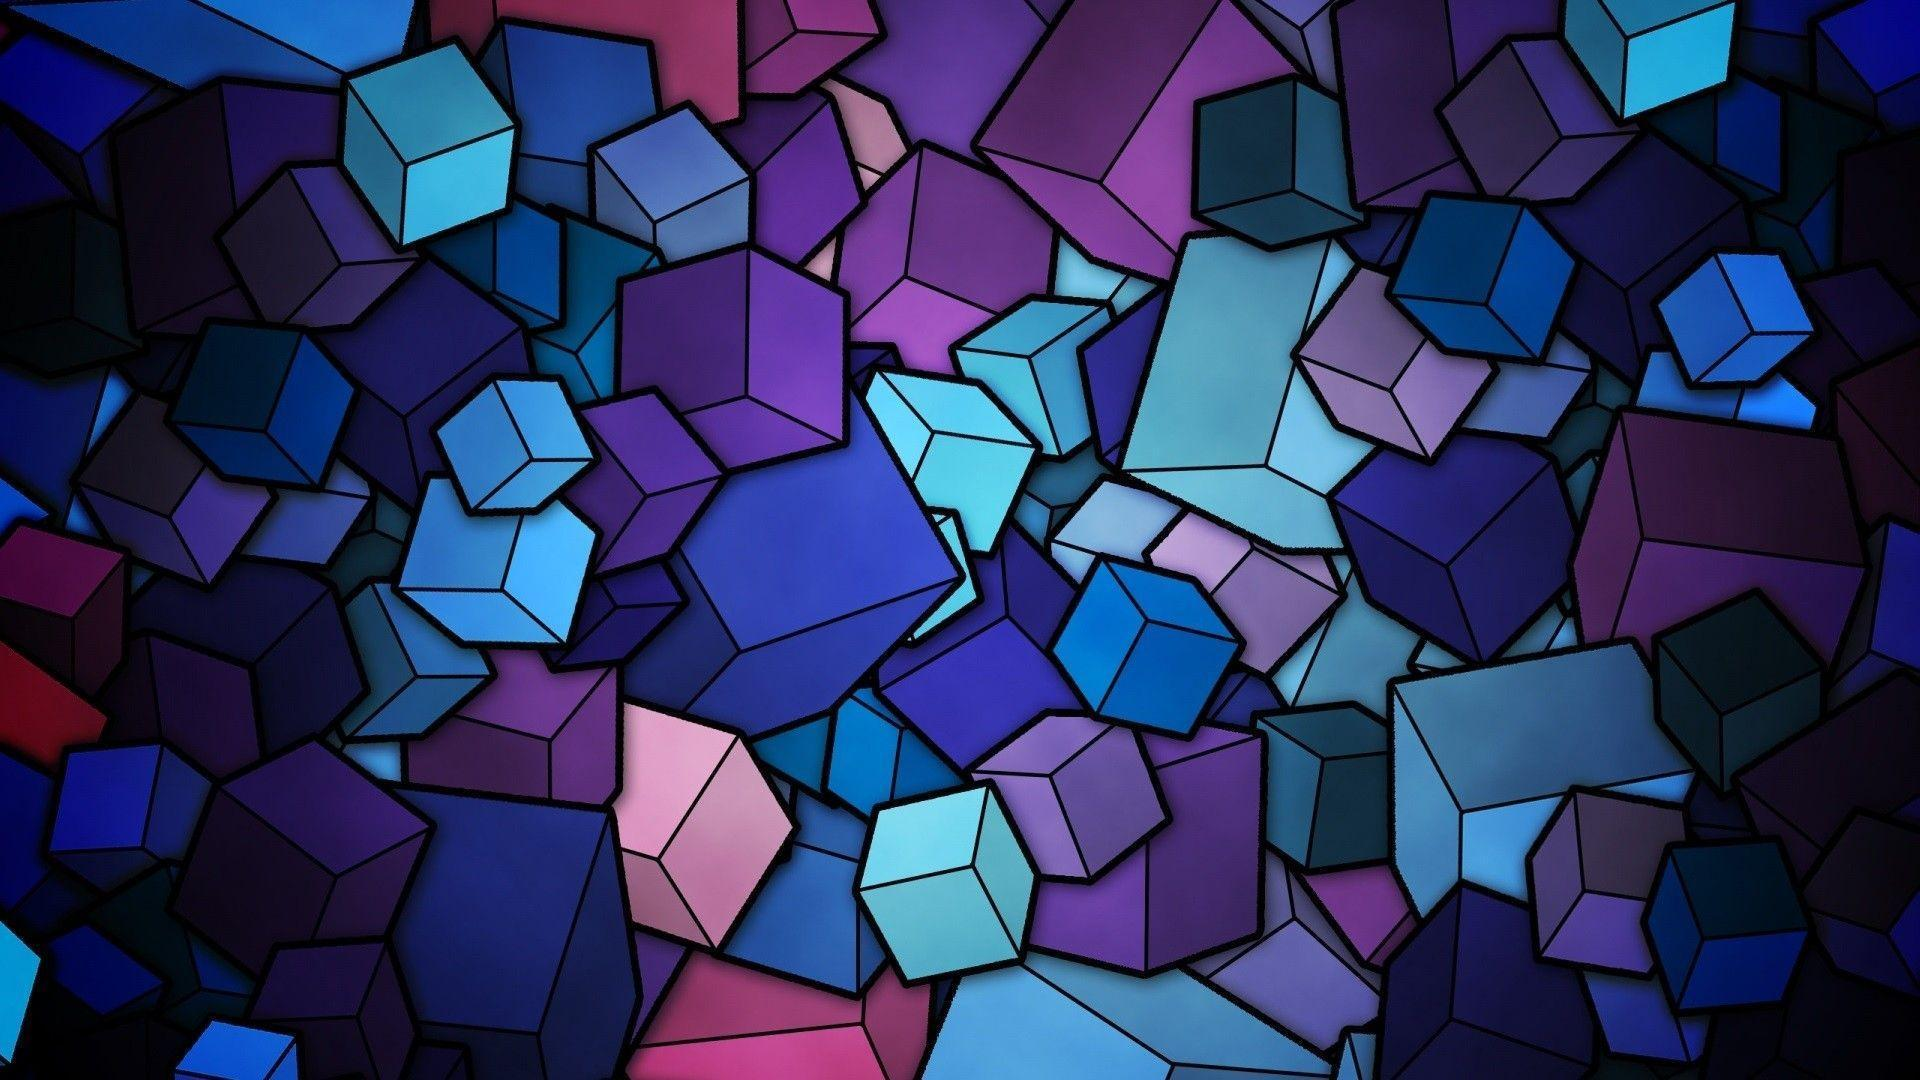 geometric wallpaper hd  Geometric Wallpapers - Wallpaper Cave